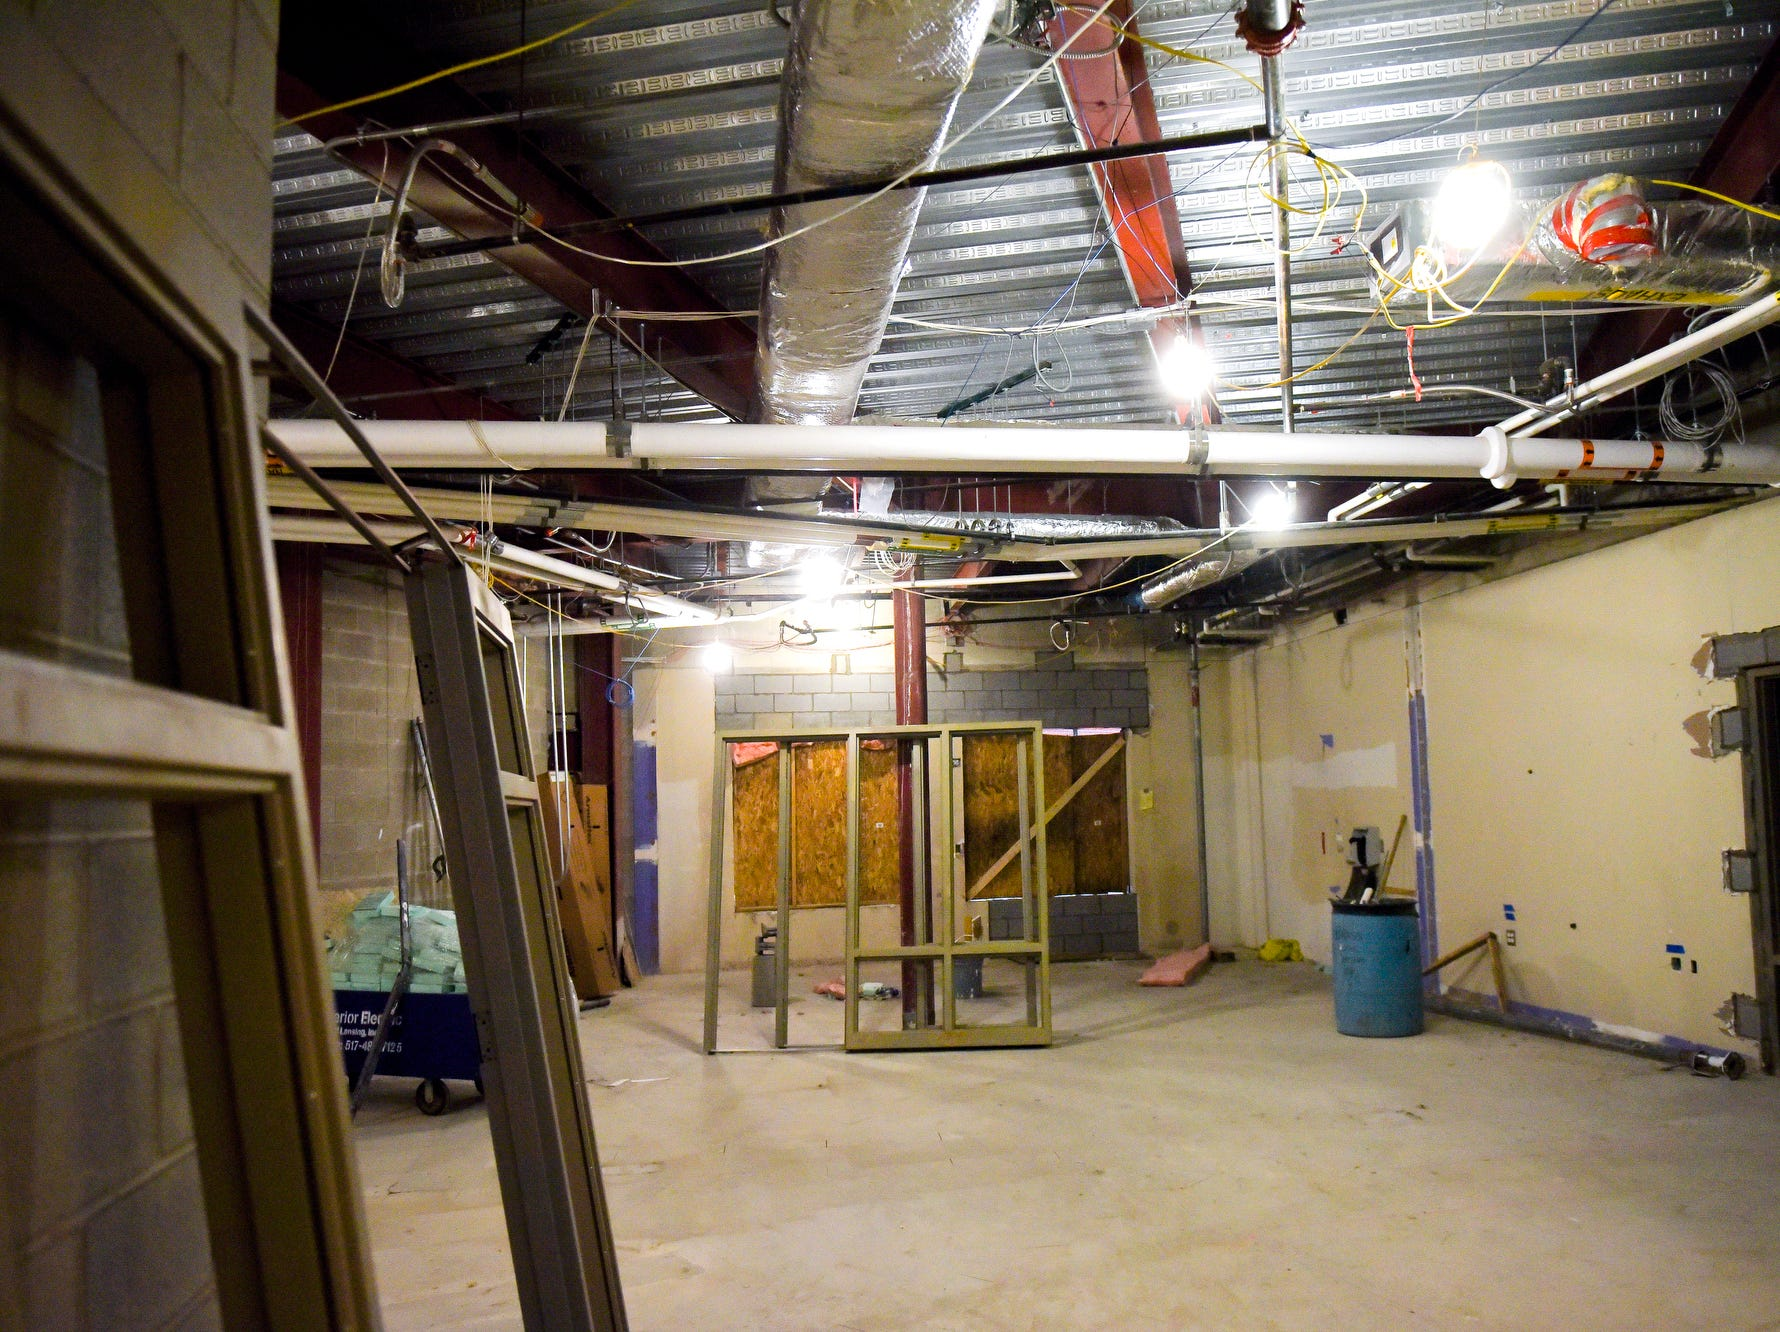 An area under construction is seen during a tour of the construction of the new Eastern High School on Thursday, March 14, 2019, in Lansing. The project is being funded by the district's successful Pathway Promise millage, which was passed by voters in 2016. The building was formerly Pattengill Academy.